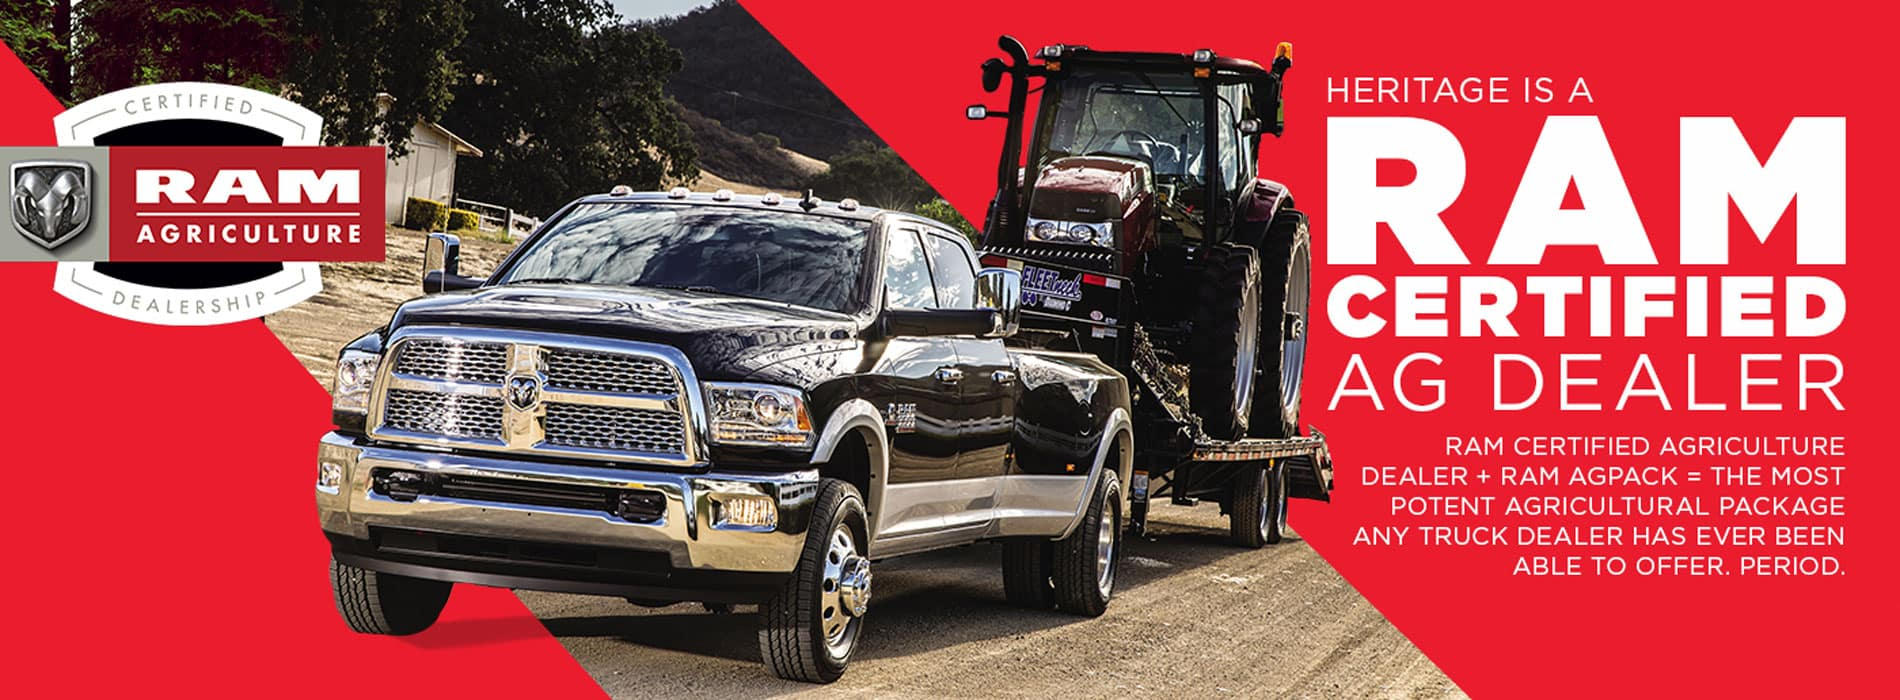 Ram Certified AG Dealer